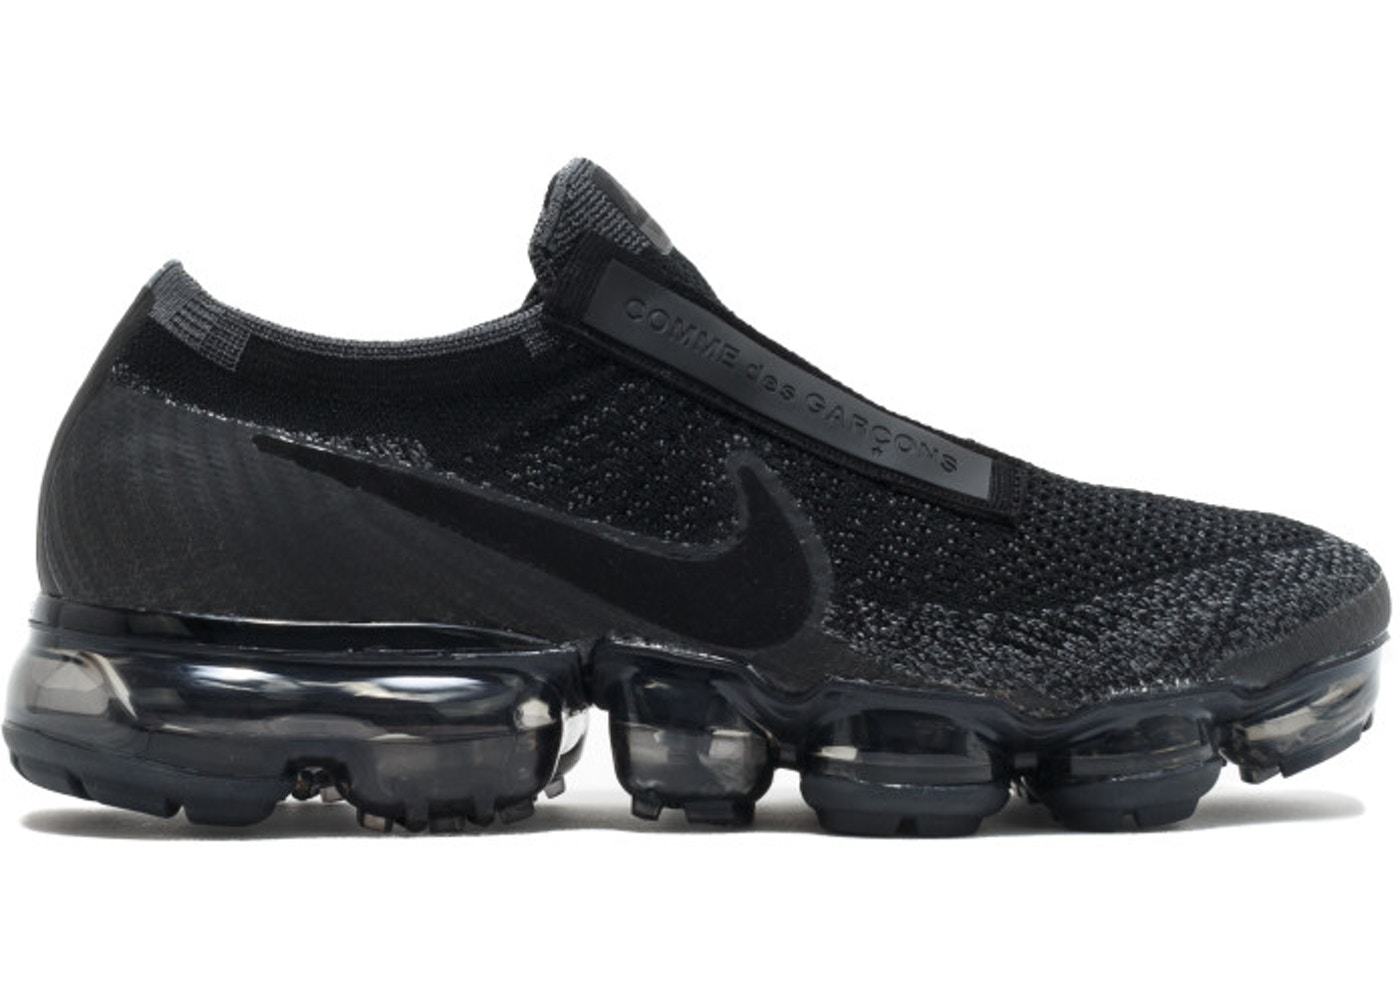 Air VaporMax CDG Black - 924501-001 770dfeb48